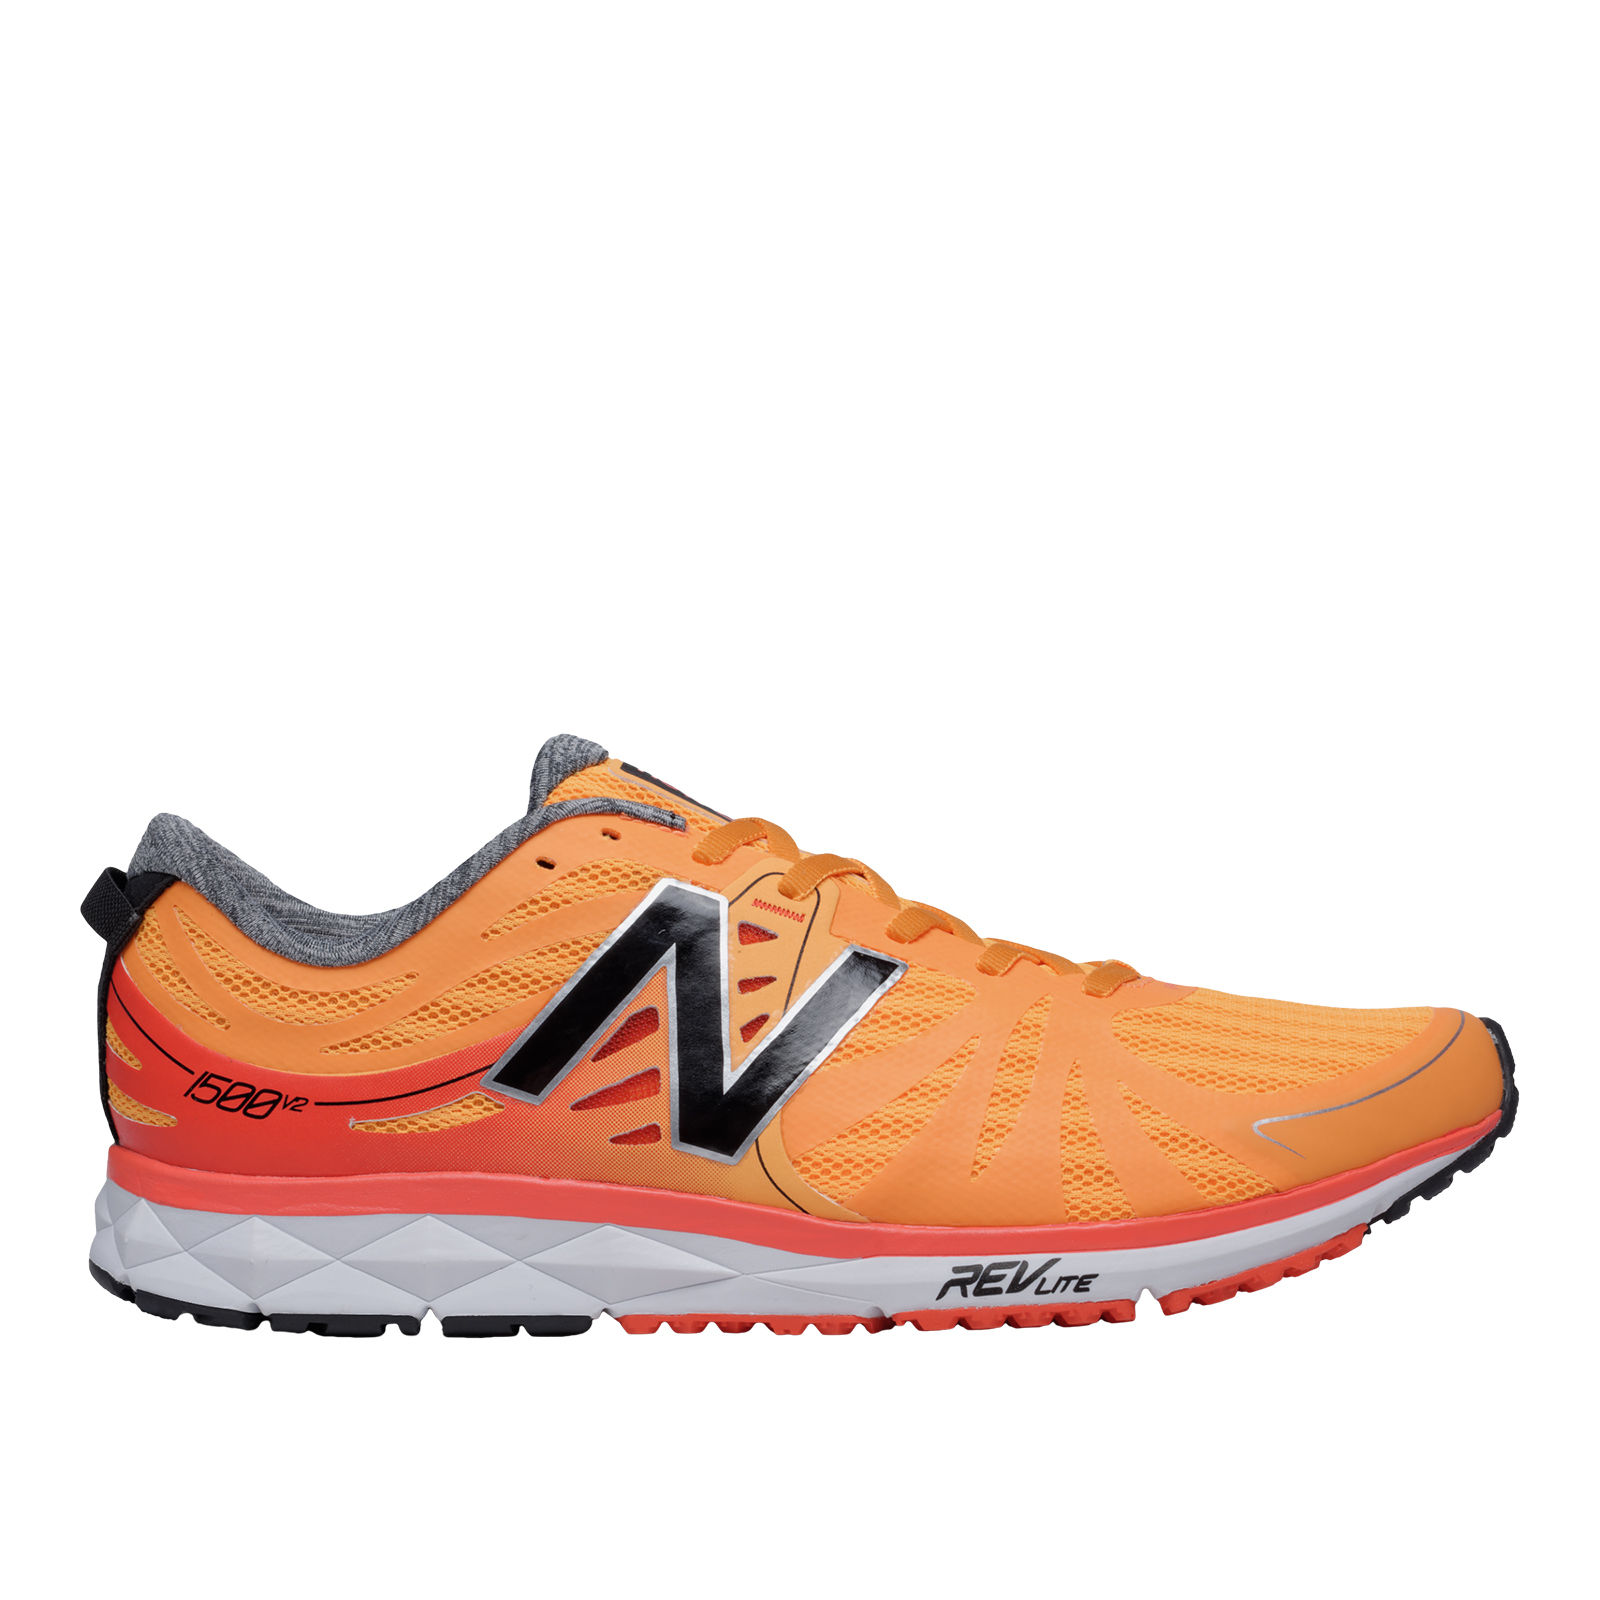 New Balance M 1500 D in Orange